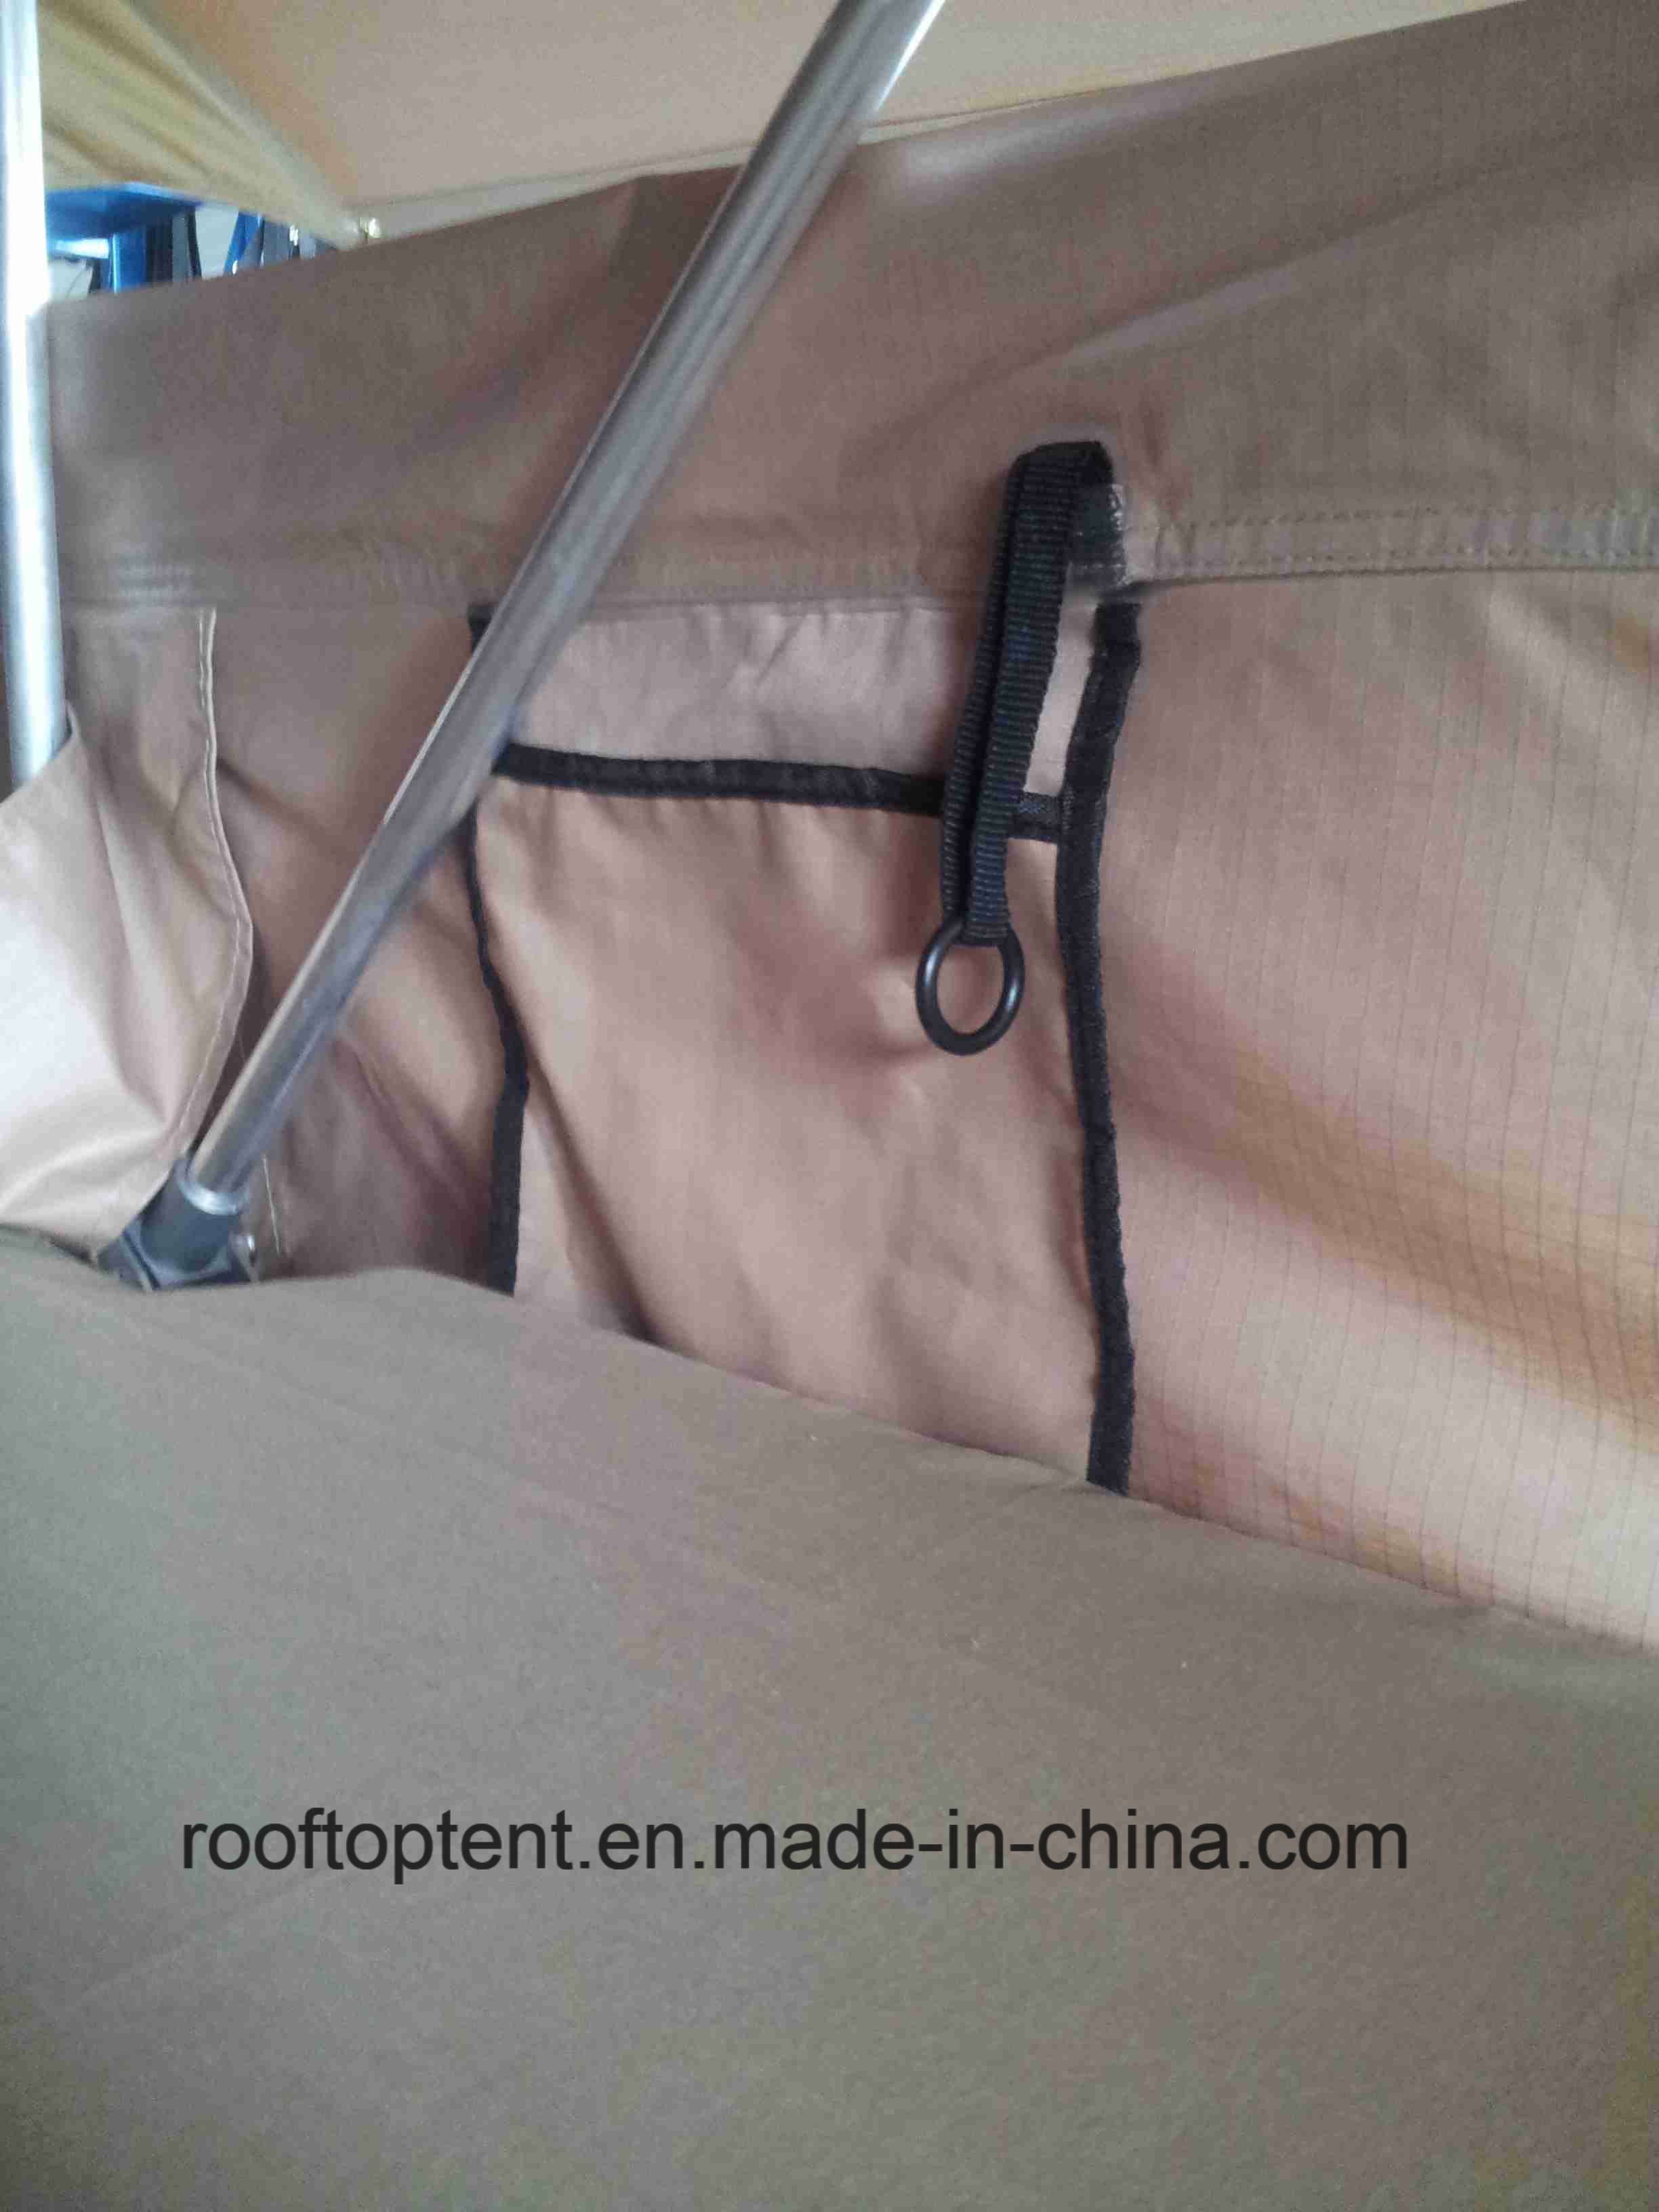 Low Price Fashionable Roof Top Tent